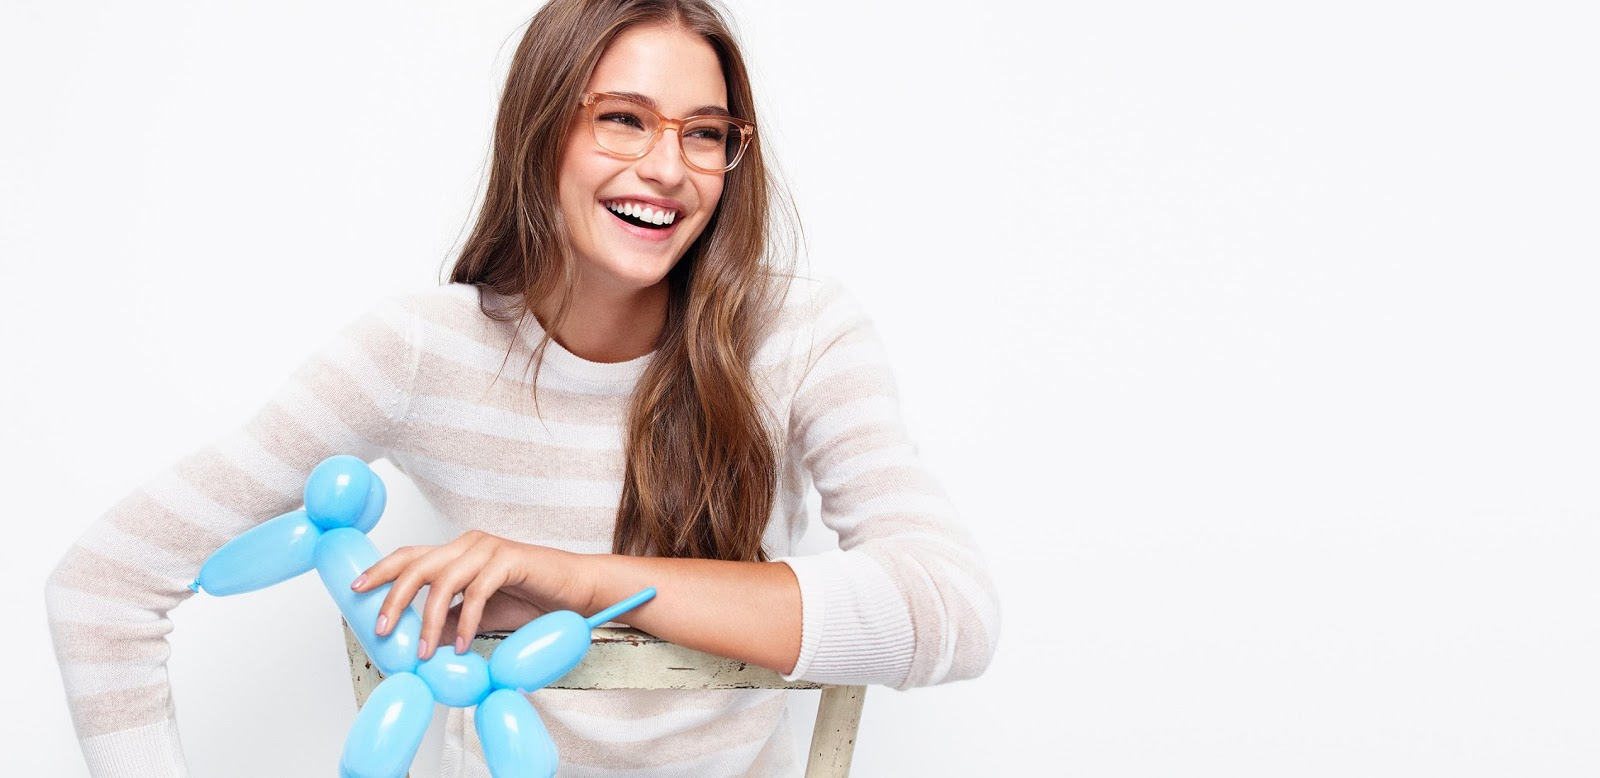 b43b86dc04 Warby Parker has just unveiled its Spring 2016 collection of eyeglasses and  sunglasses